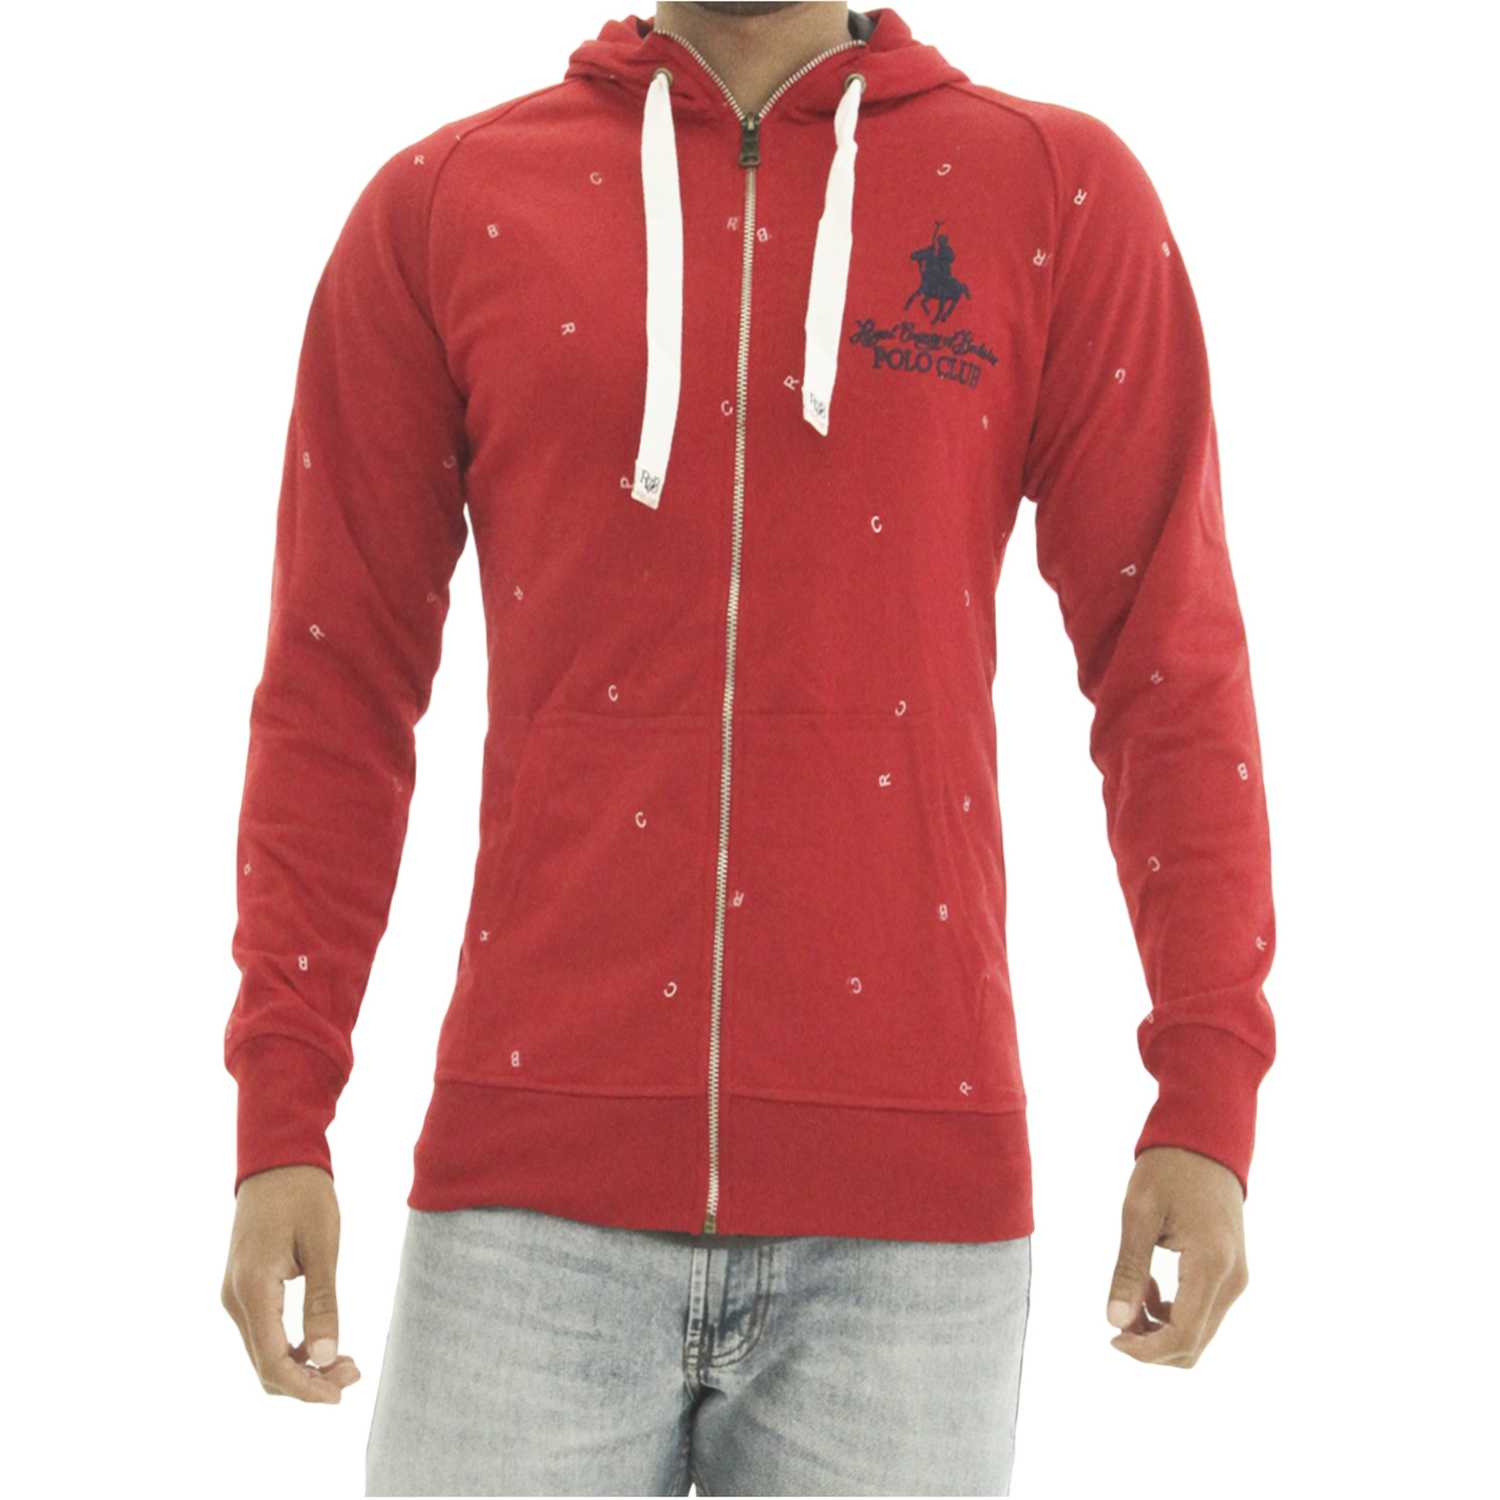 BERKSHIRE POLO CLUB casaca-159-1536927-roj Rojo Denim